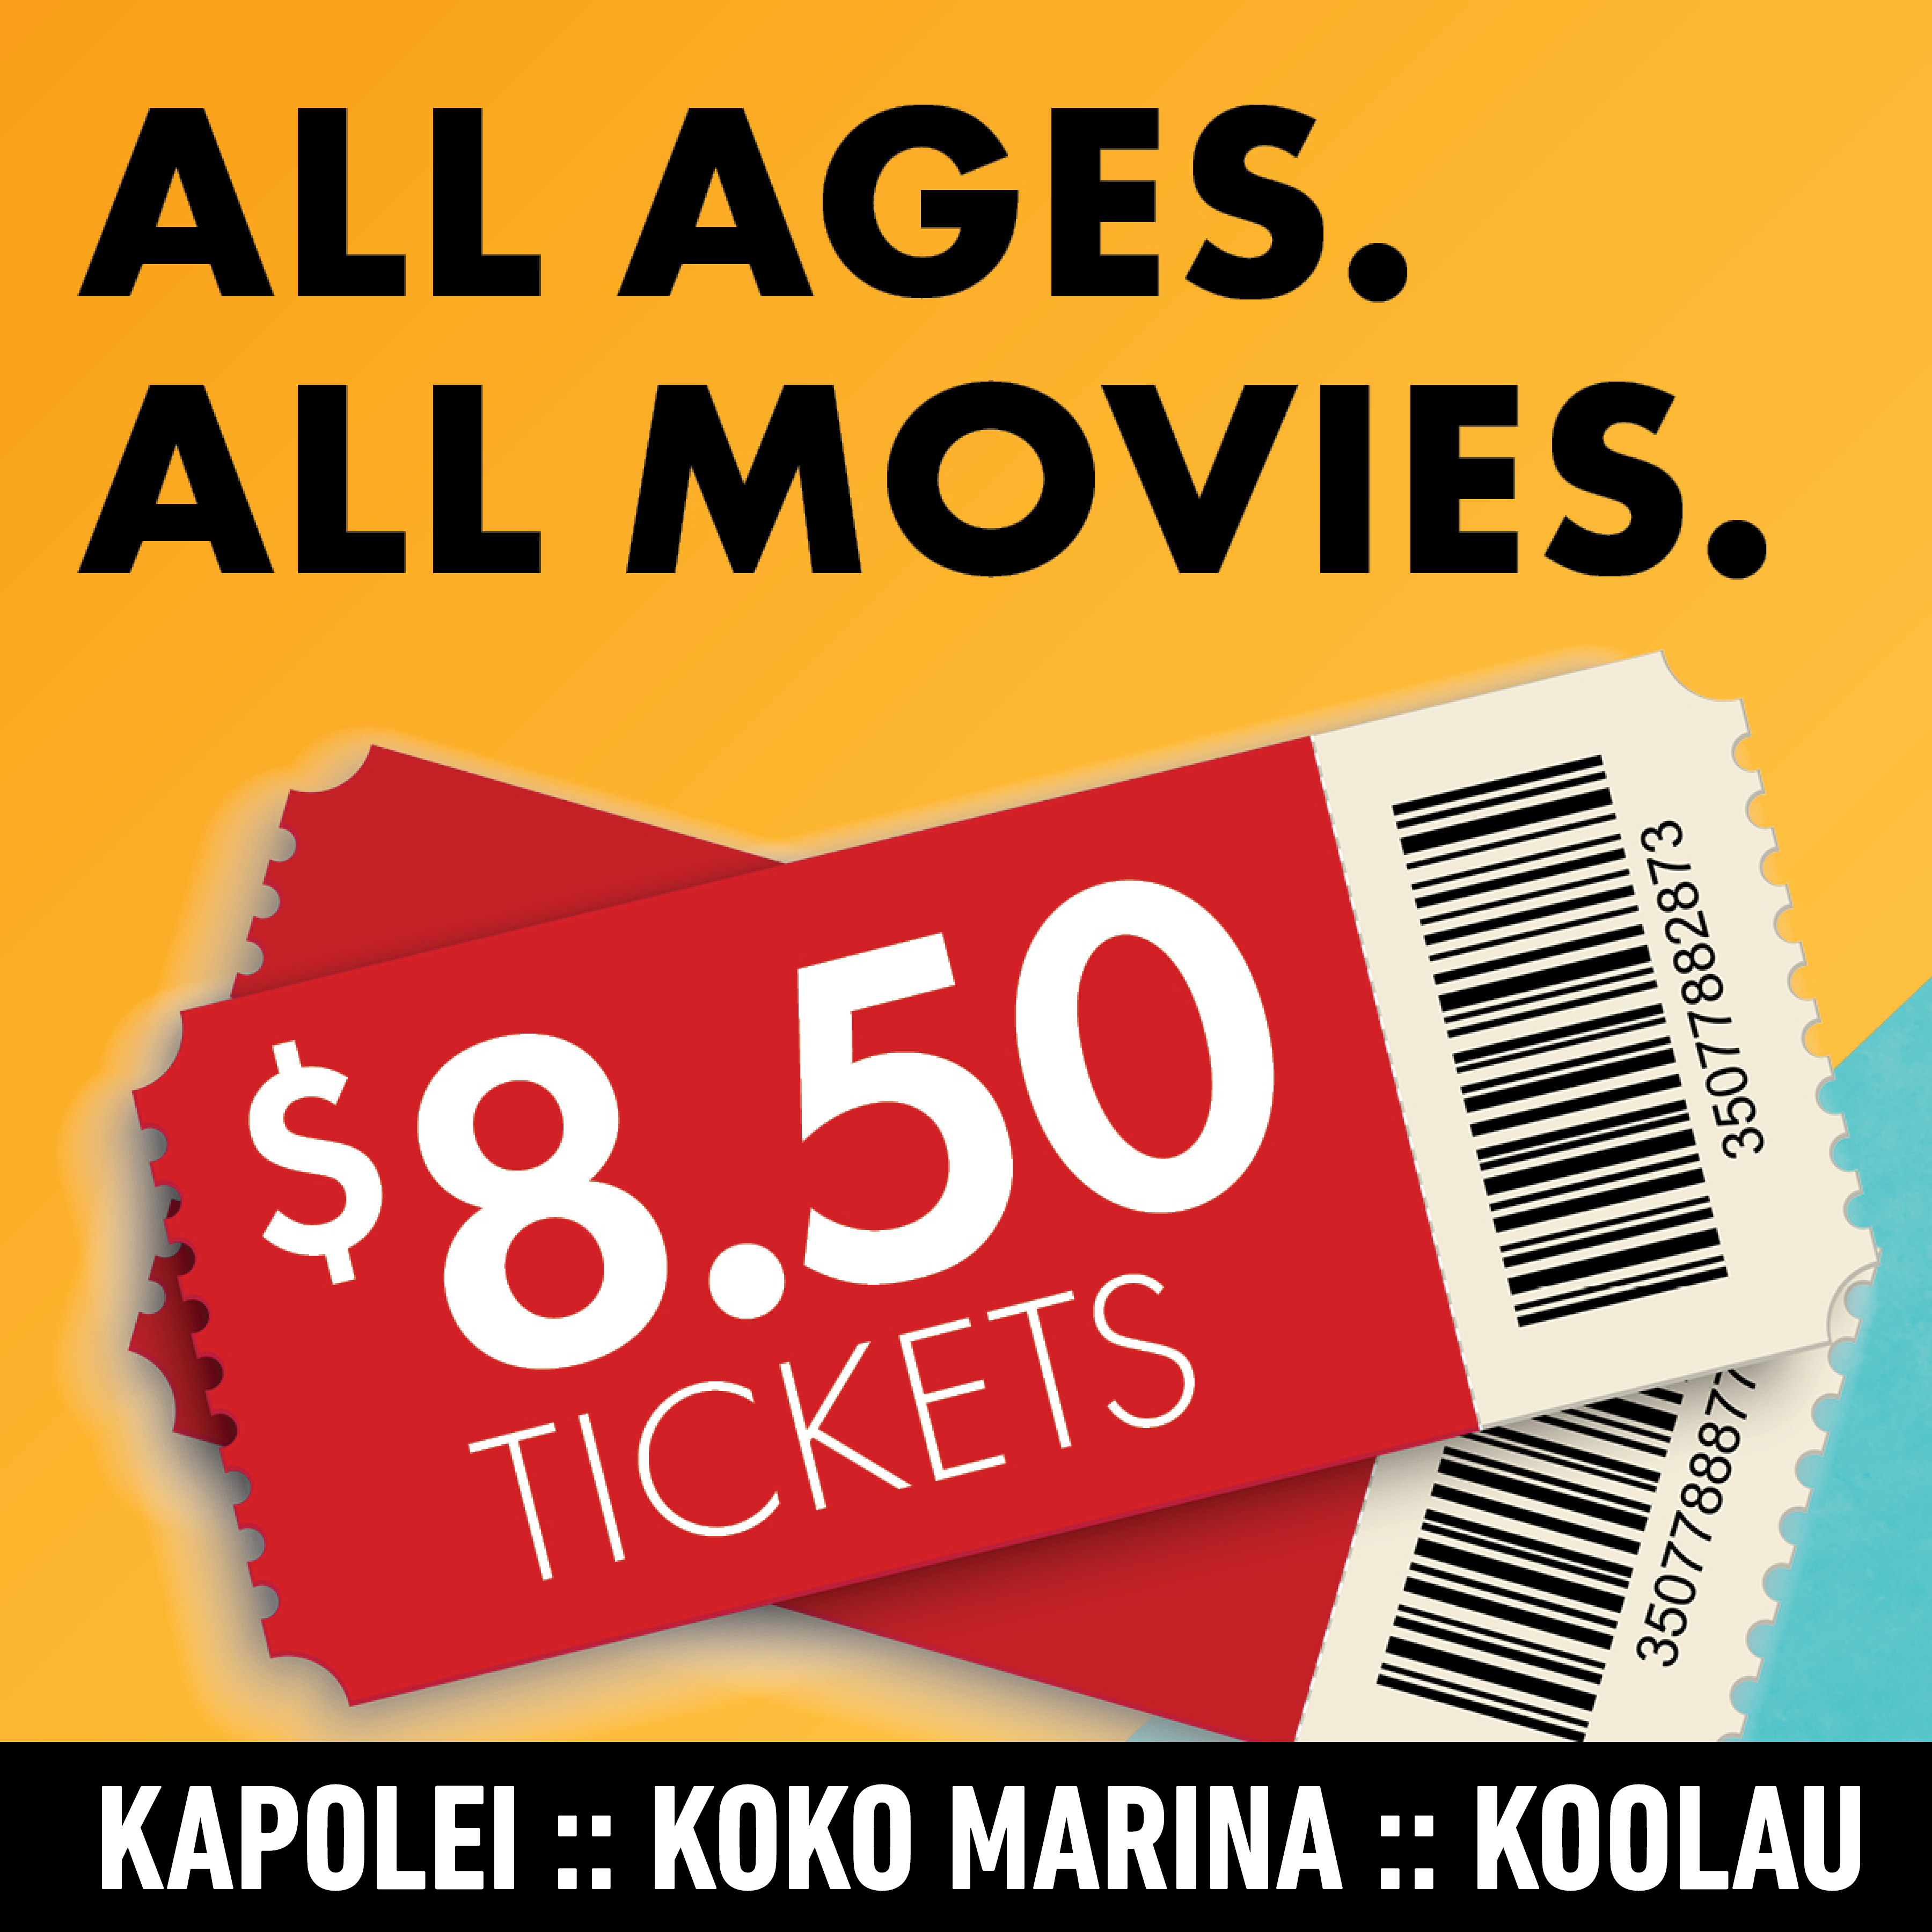 $8.50 Tickets For All Movies